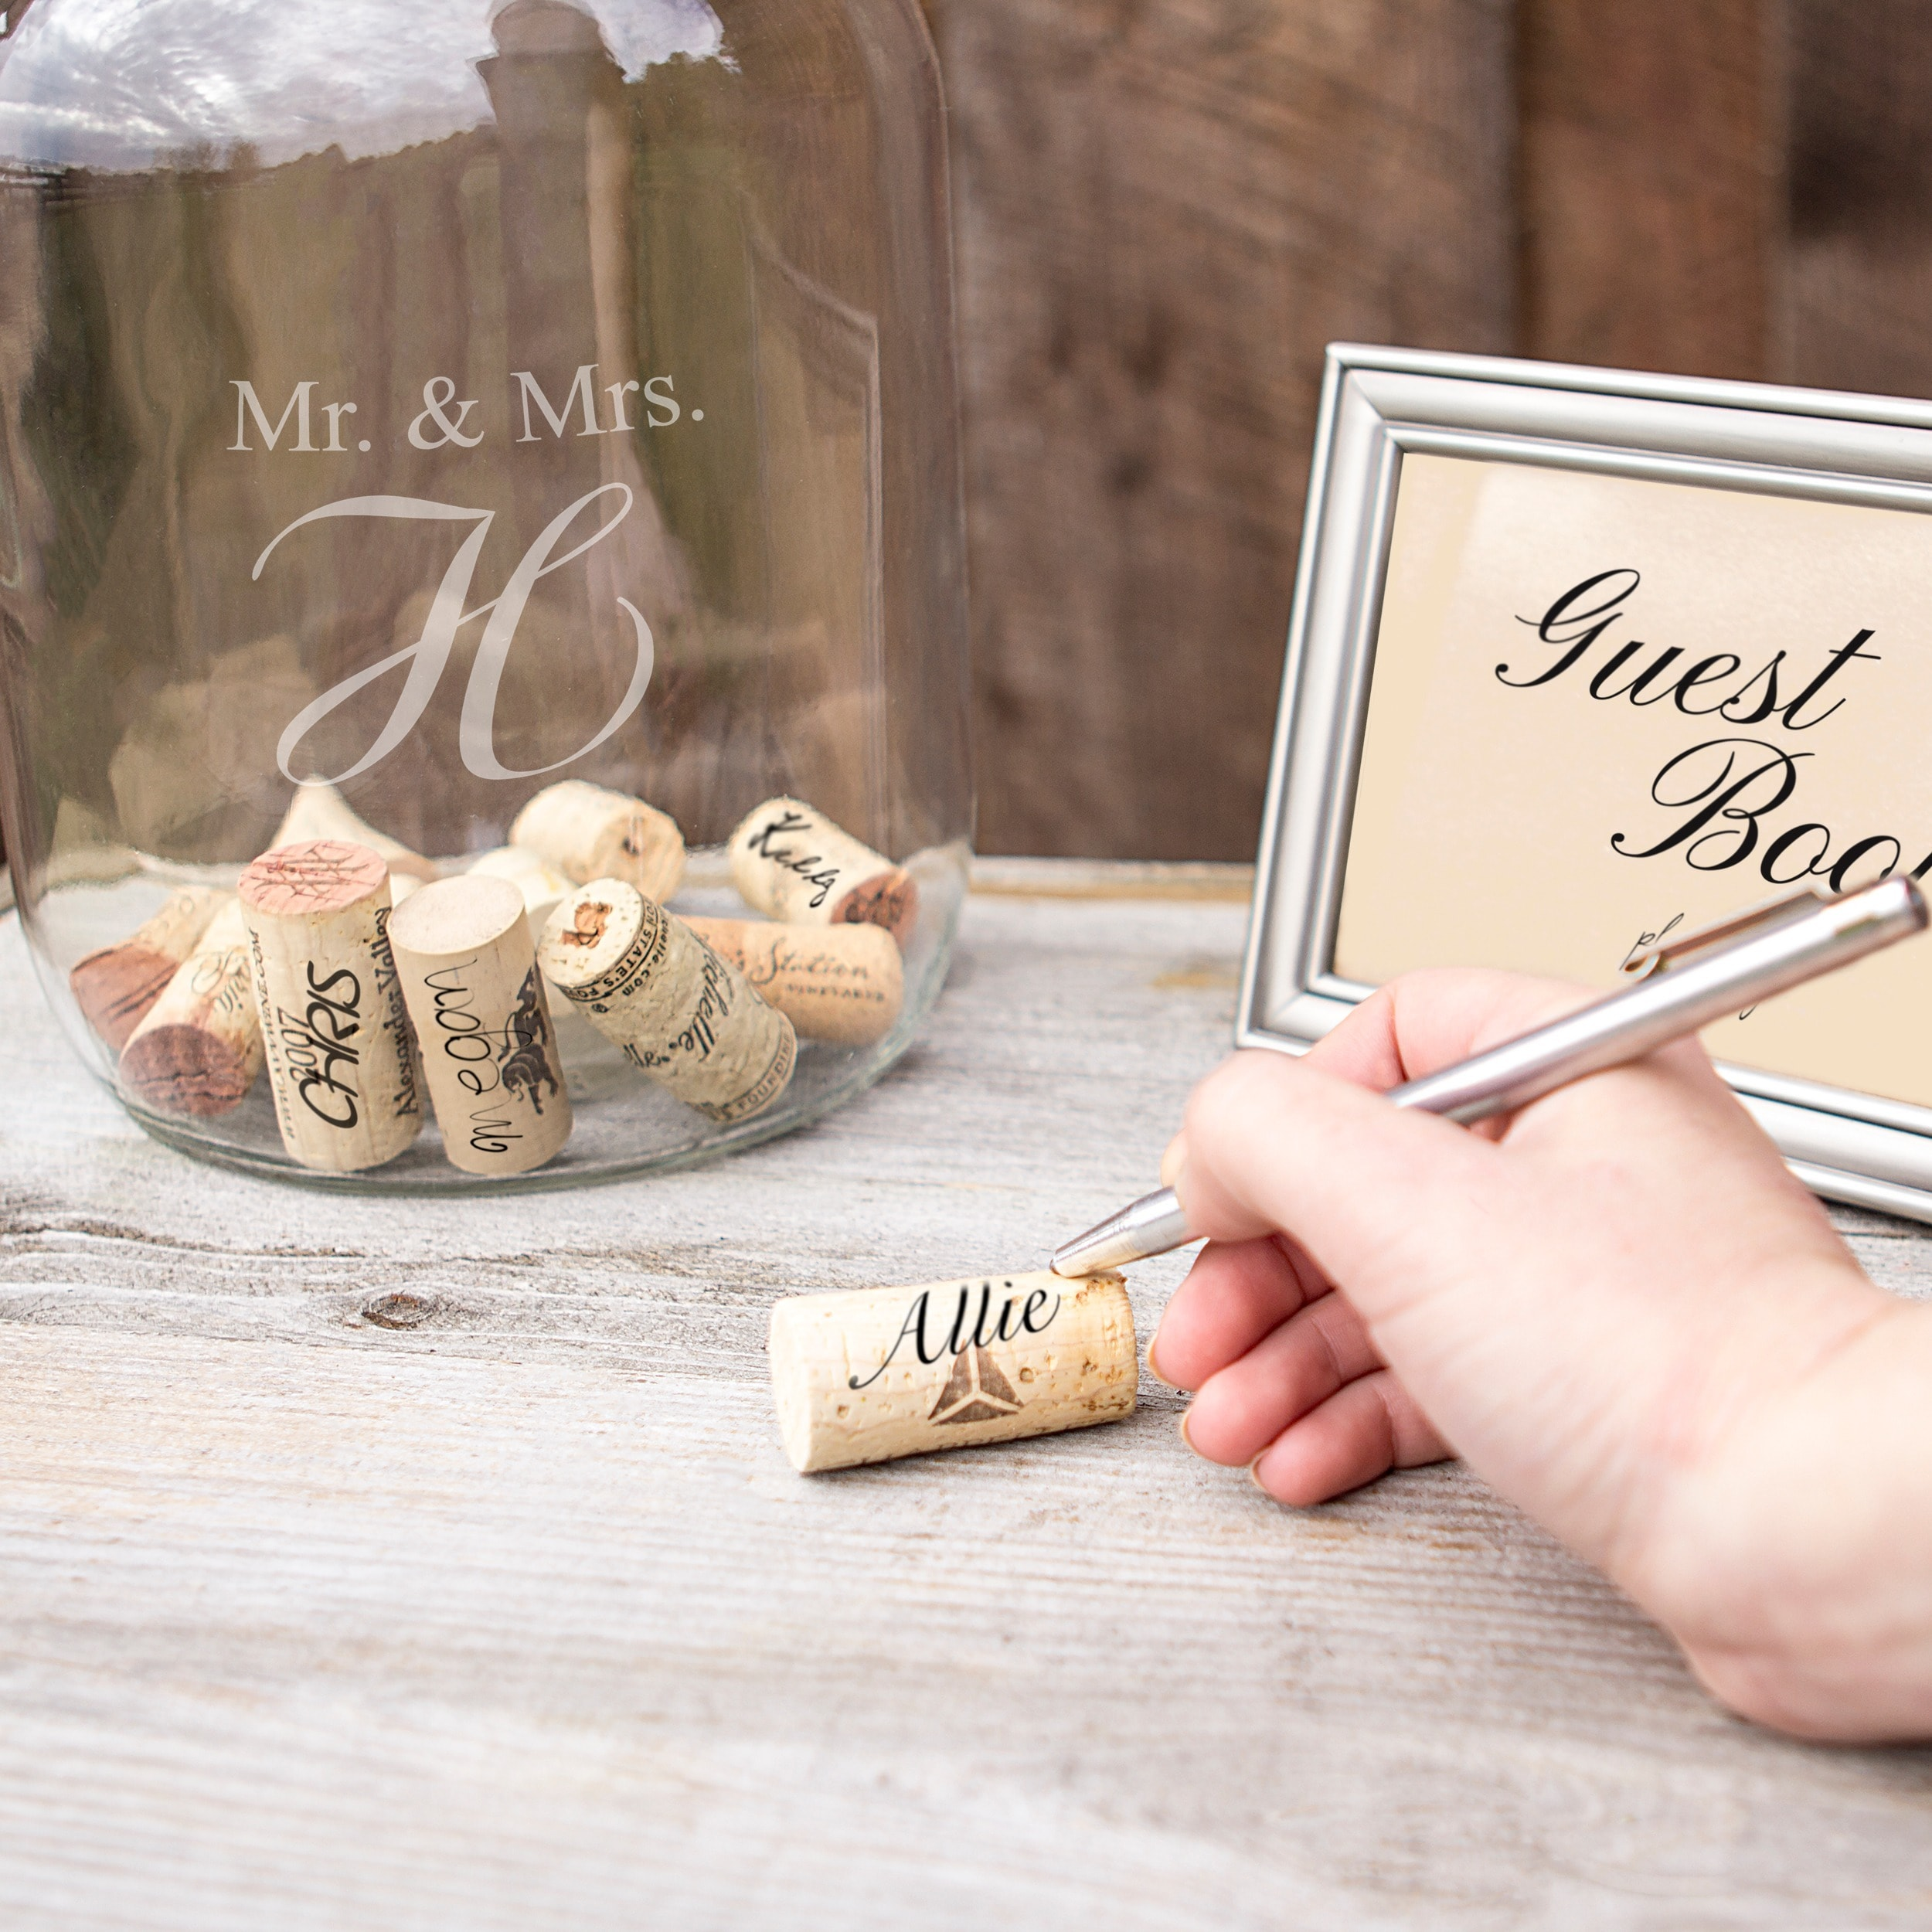 Personalized mr mrs wedding wishes in a bottle guest bottle personalized mr mrs wedding wishes in a bottle guest bottle free shipping on orders over 45 overstock 16584914 kristyandbryce Images